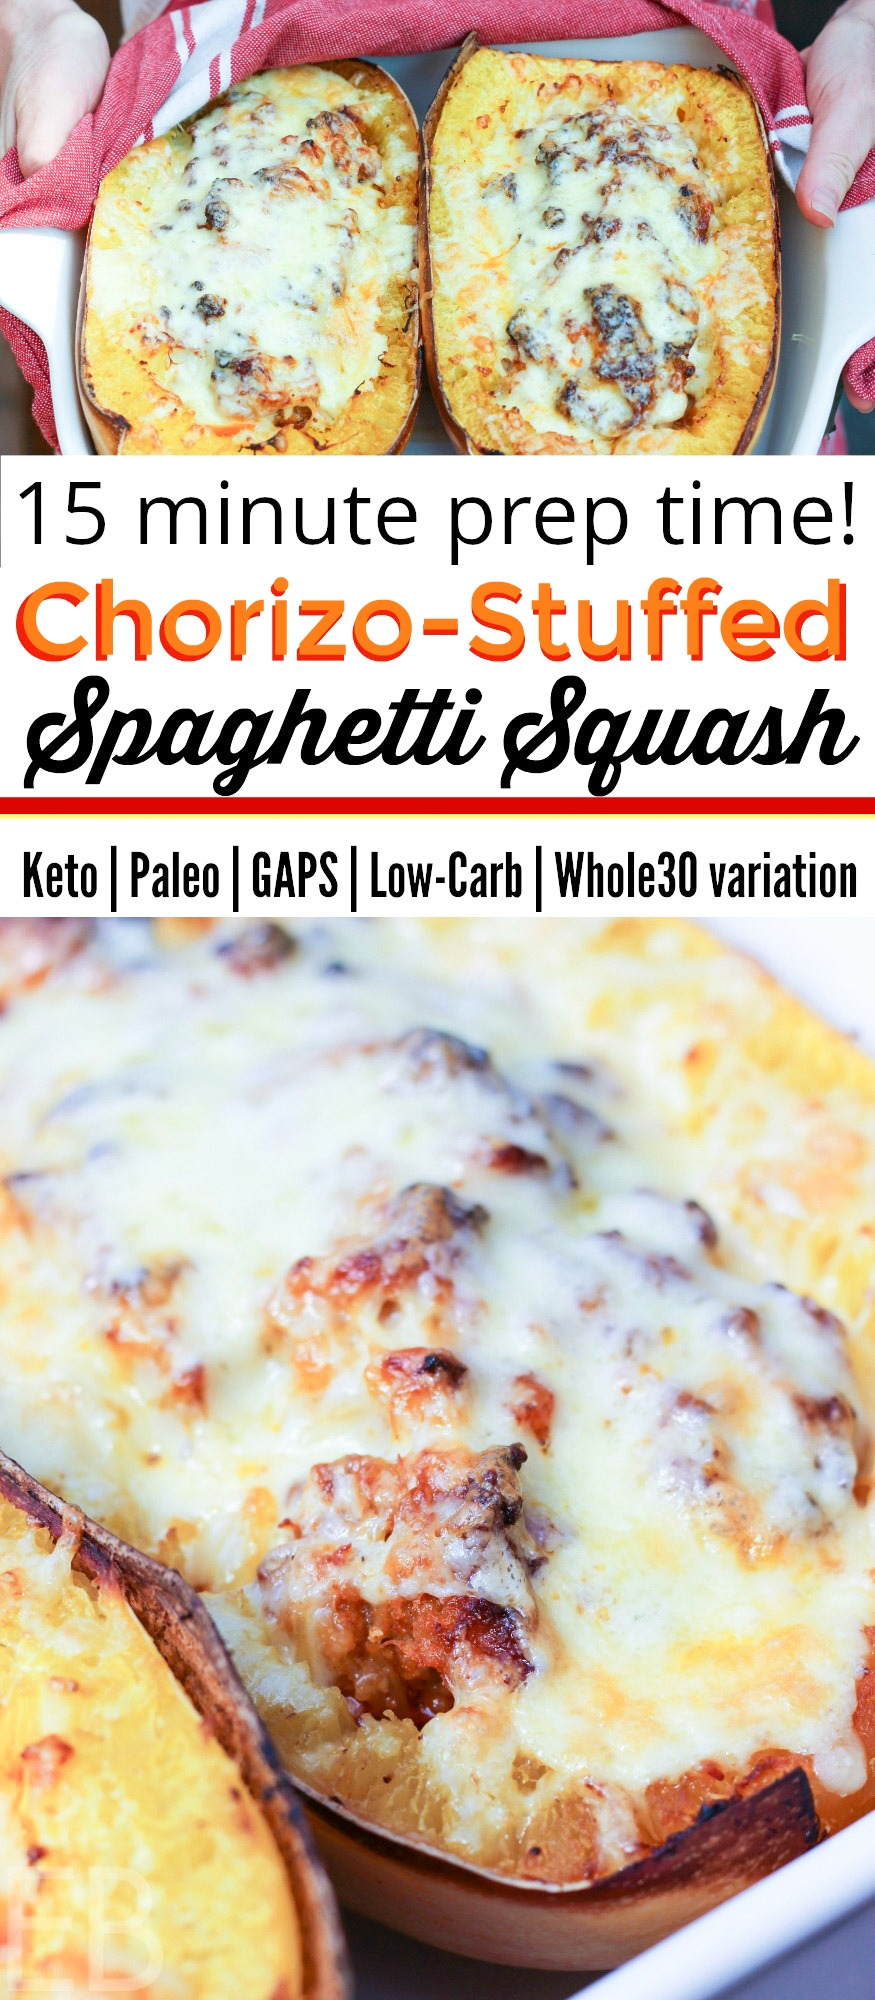 Chorizo Stuffed Spaghetti Squash takes only 15 minutes to make and is delicious!! Great for so many diets, can be made with or without dairy for Paleo, Keto, GAPS, Whole30 and Low Carb! #chorizo #spaghettisquash #wintersquash #keto #paleo #lowcarb #gapsdiet #whole30 #ketorecipes #ketodinner #paleodinner #lowcarbdinner #whole30dinner